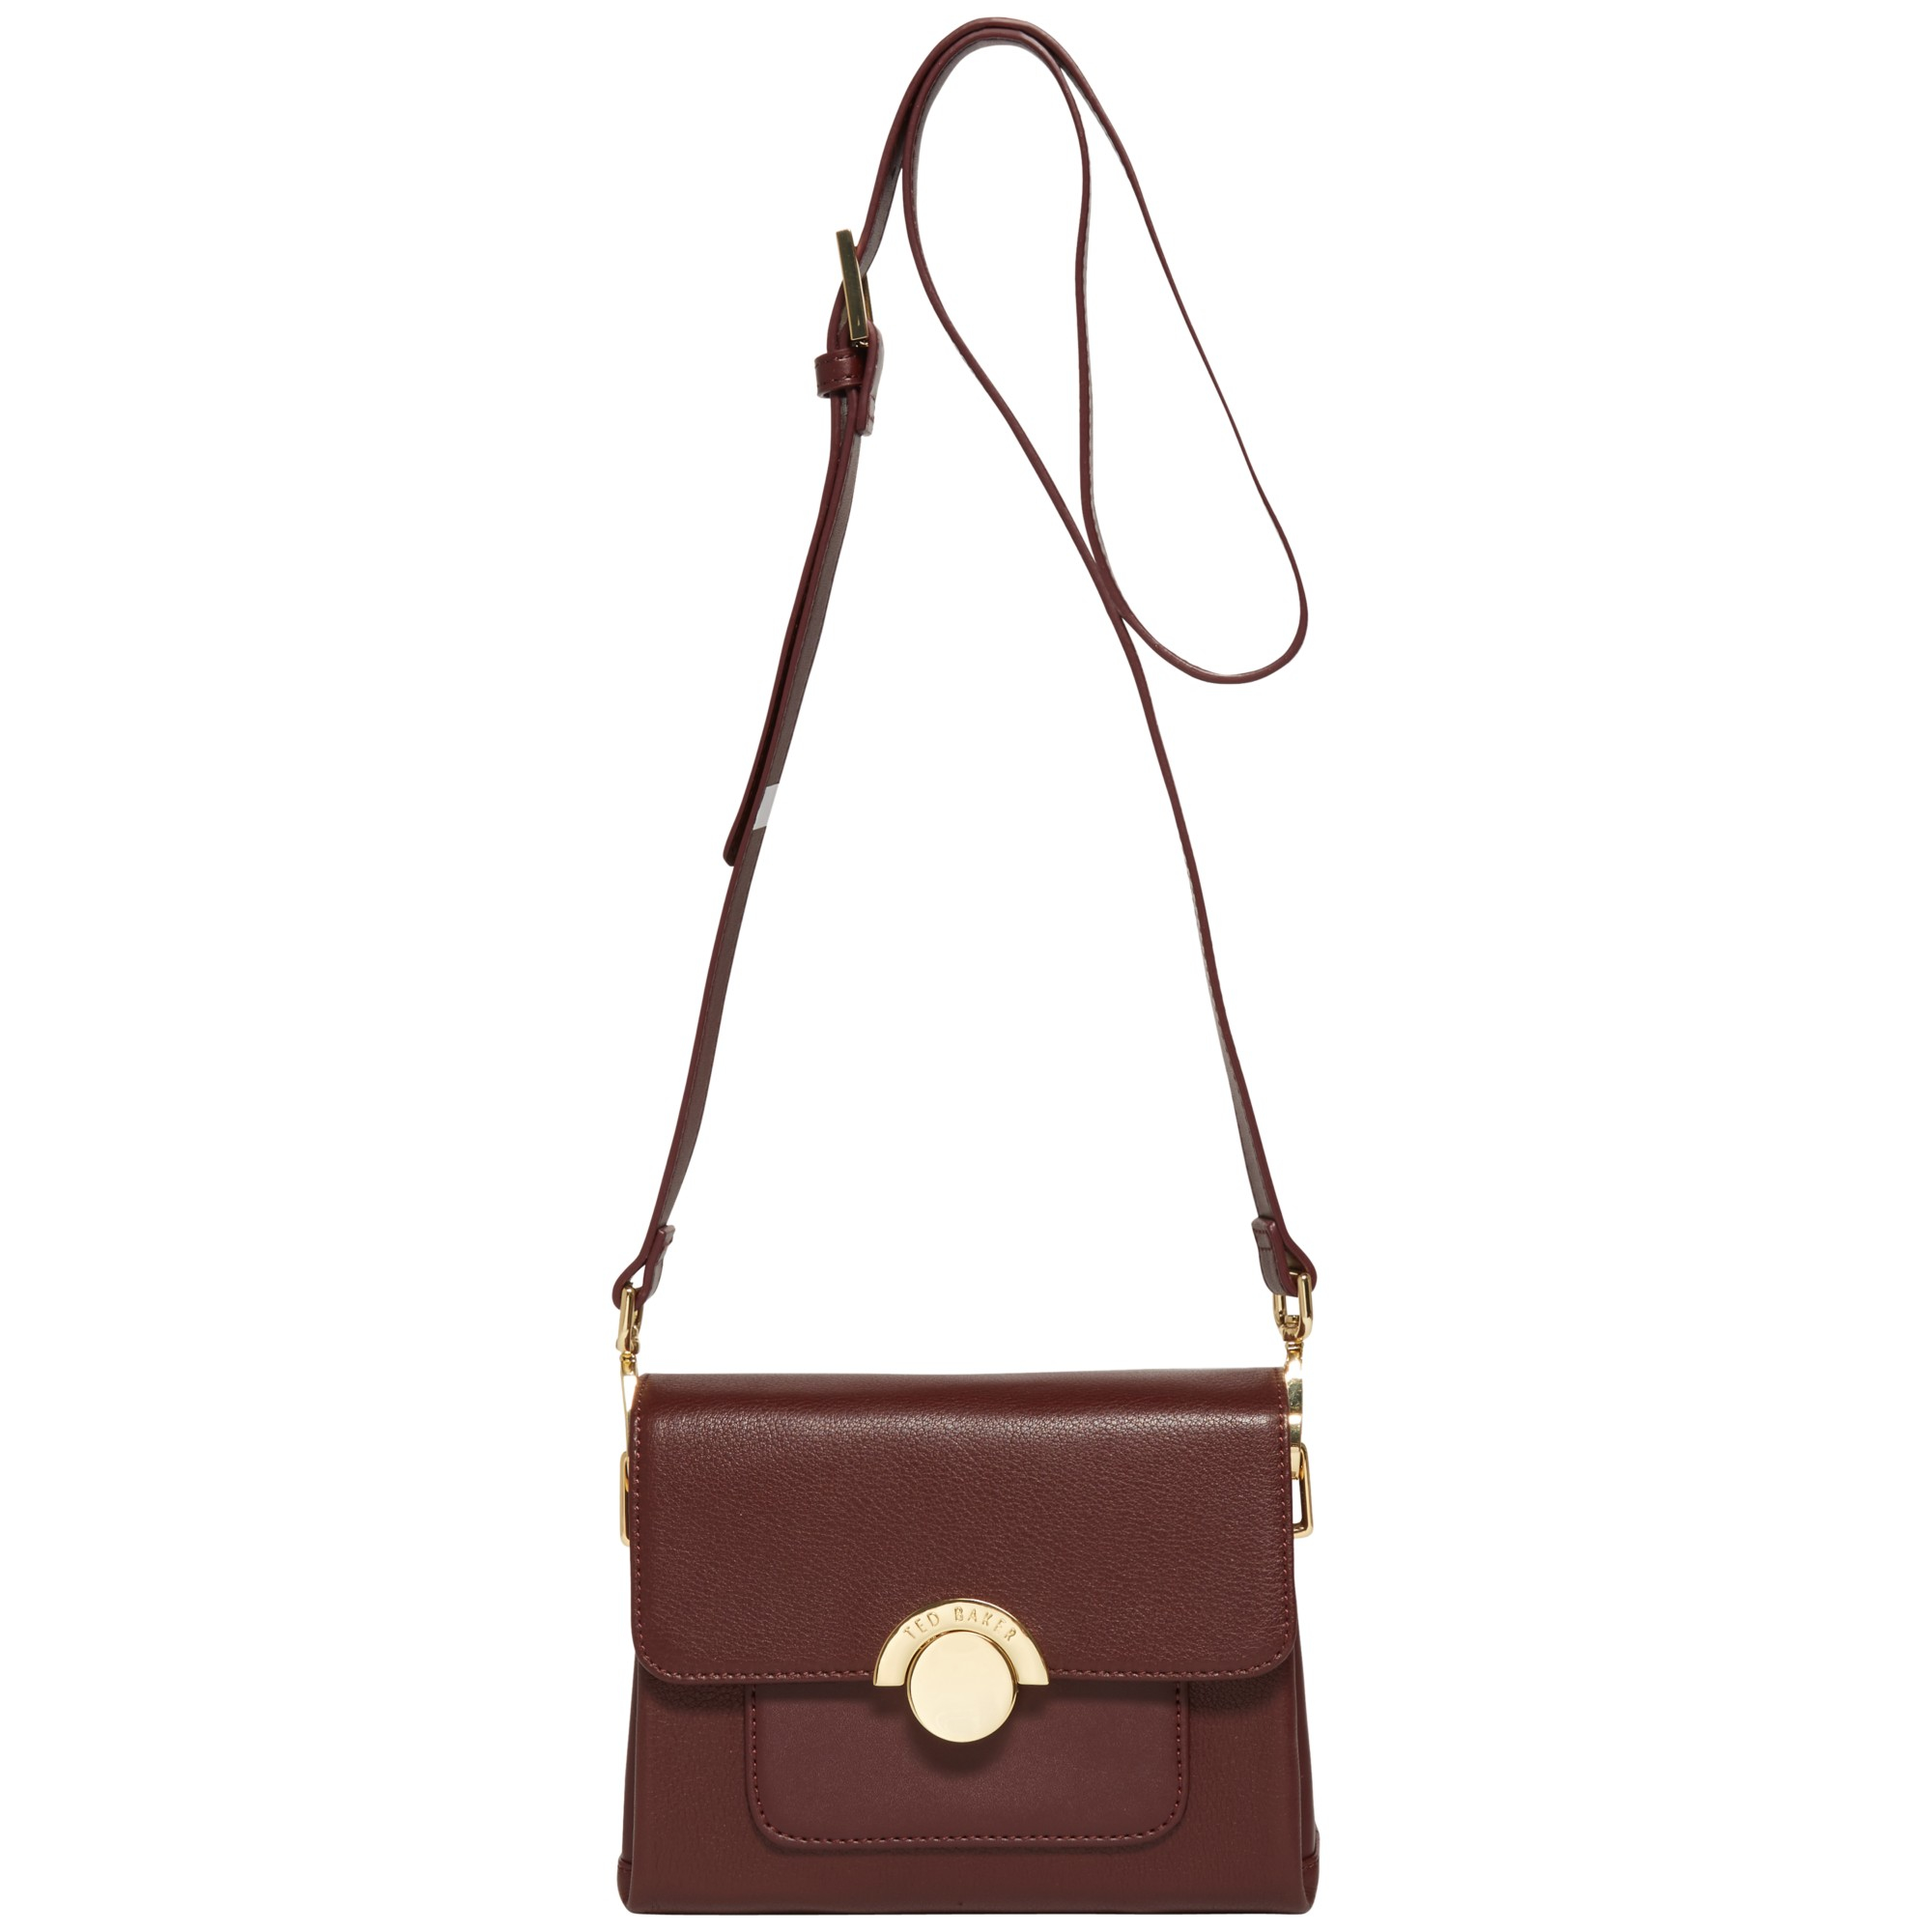 39a16b131433 Ted Baker Leaha Mini Leather Shoulder Bag in Brown - Lyst